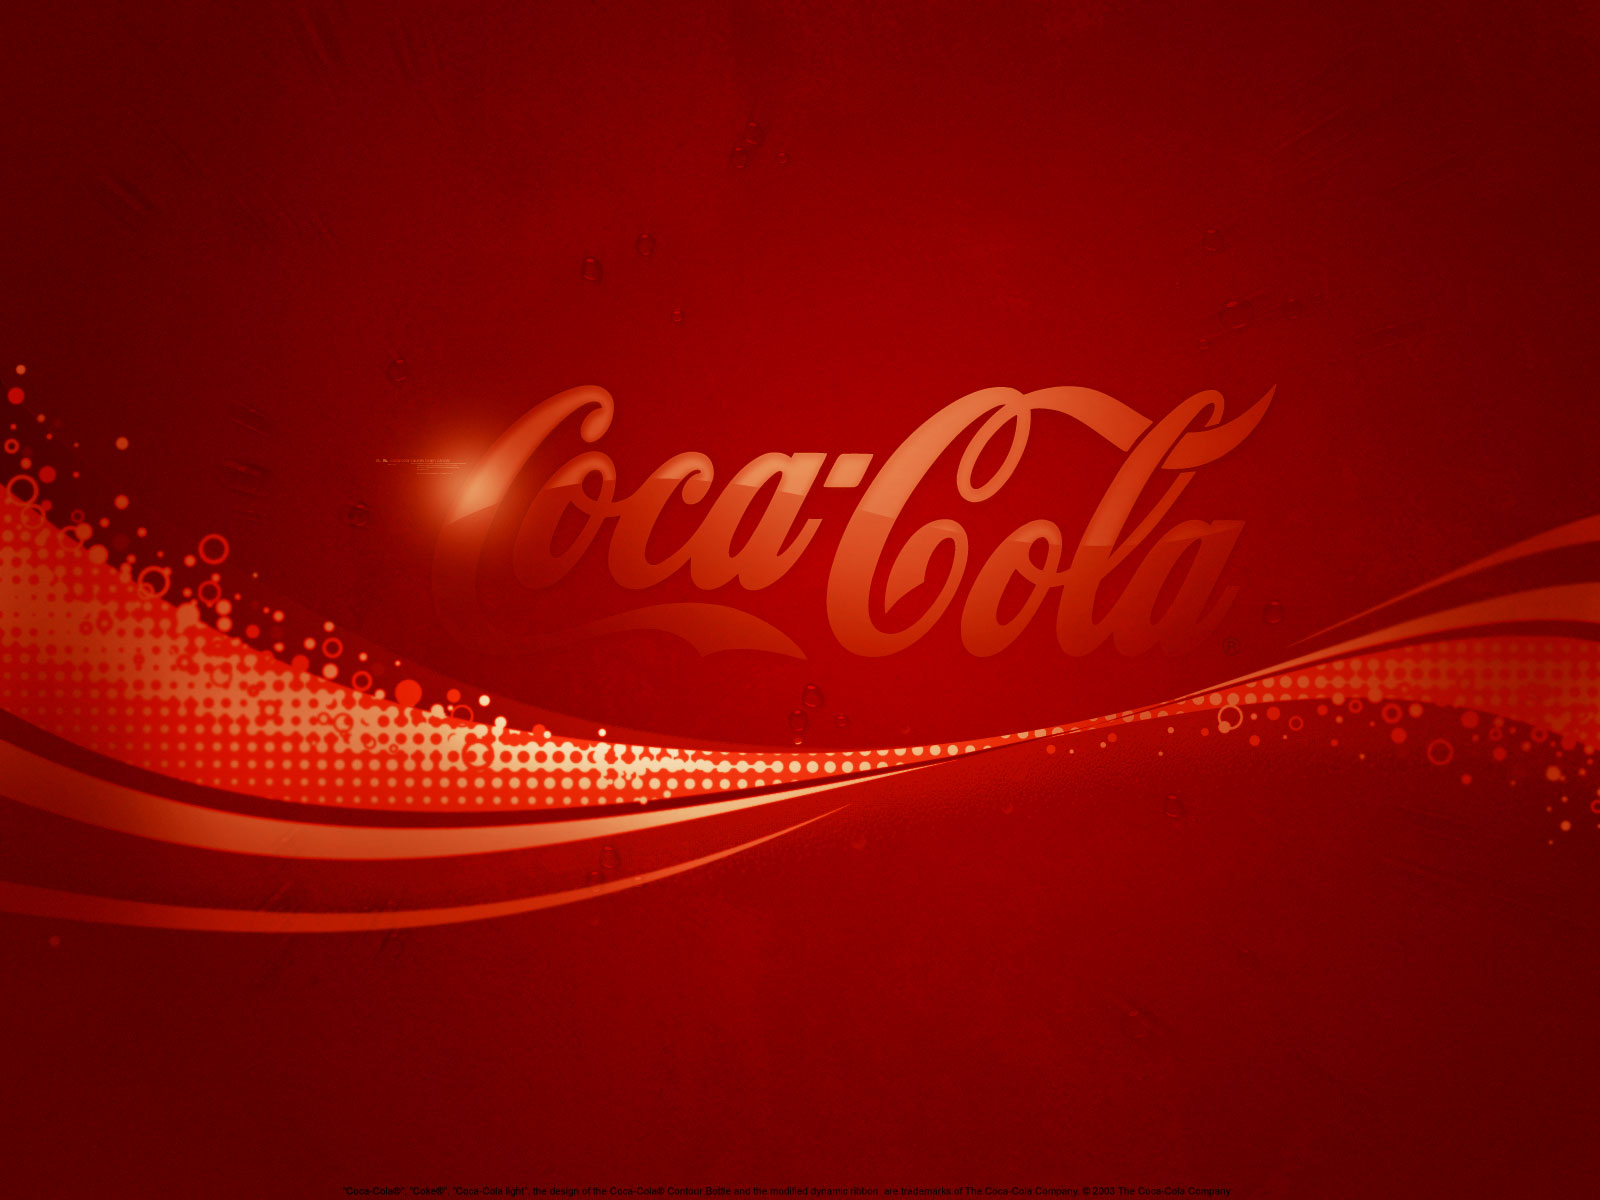 Coca Cola Red Wallpaper Hd 1600x1200